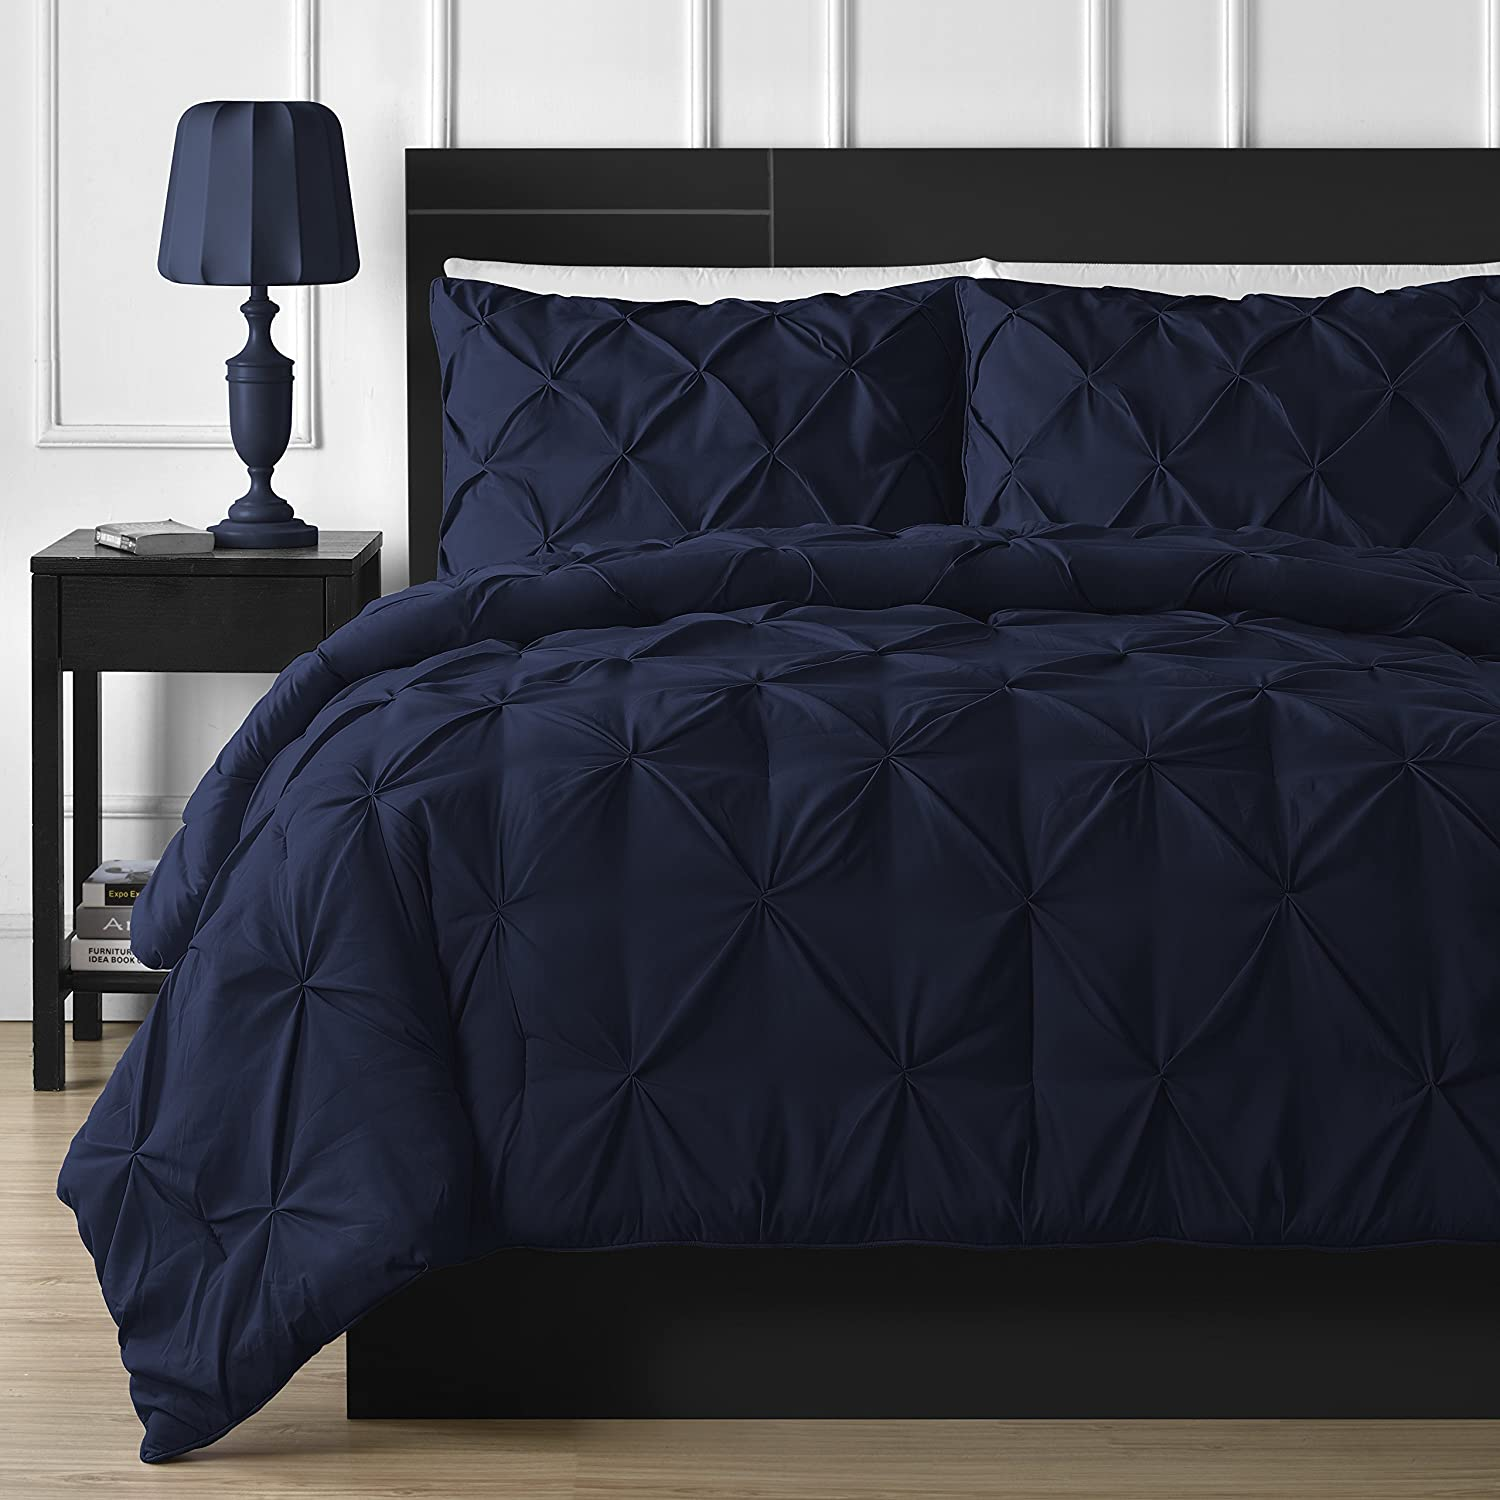 Double Needle Durable Stitching Comfy Bedding 3-Piece Pinch Pleat Comforter Set All Season Pintuck Style (King, Navy Blue